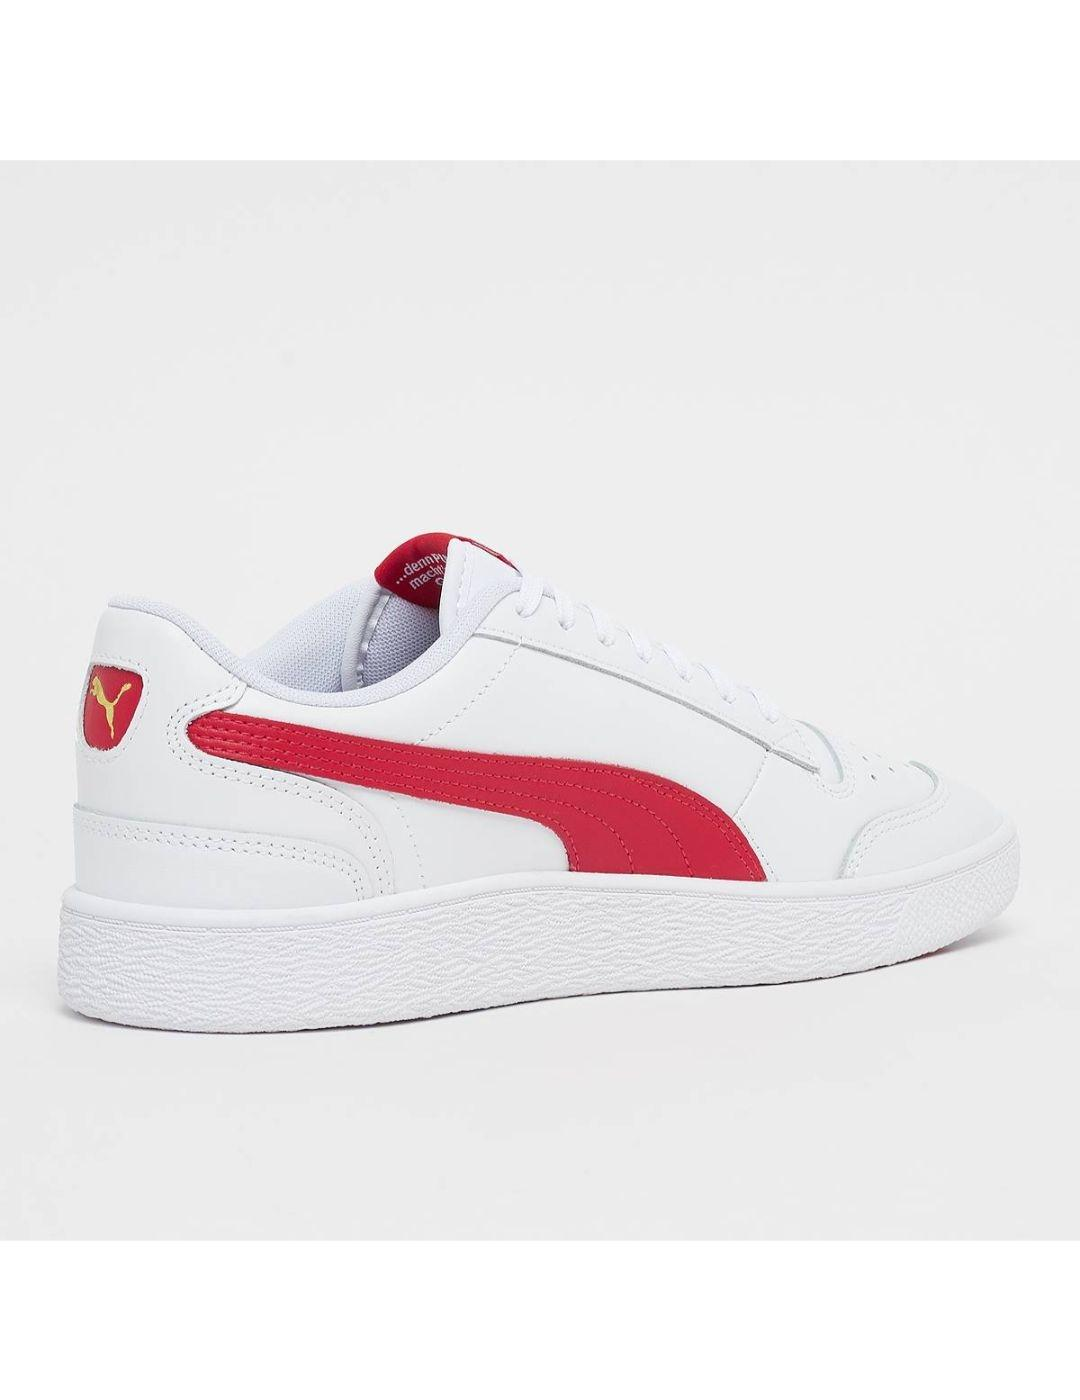 RALPH SIMPSON LO WHITE-RED-X